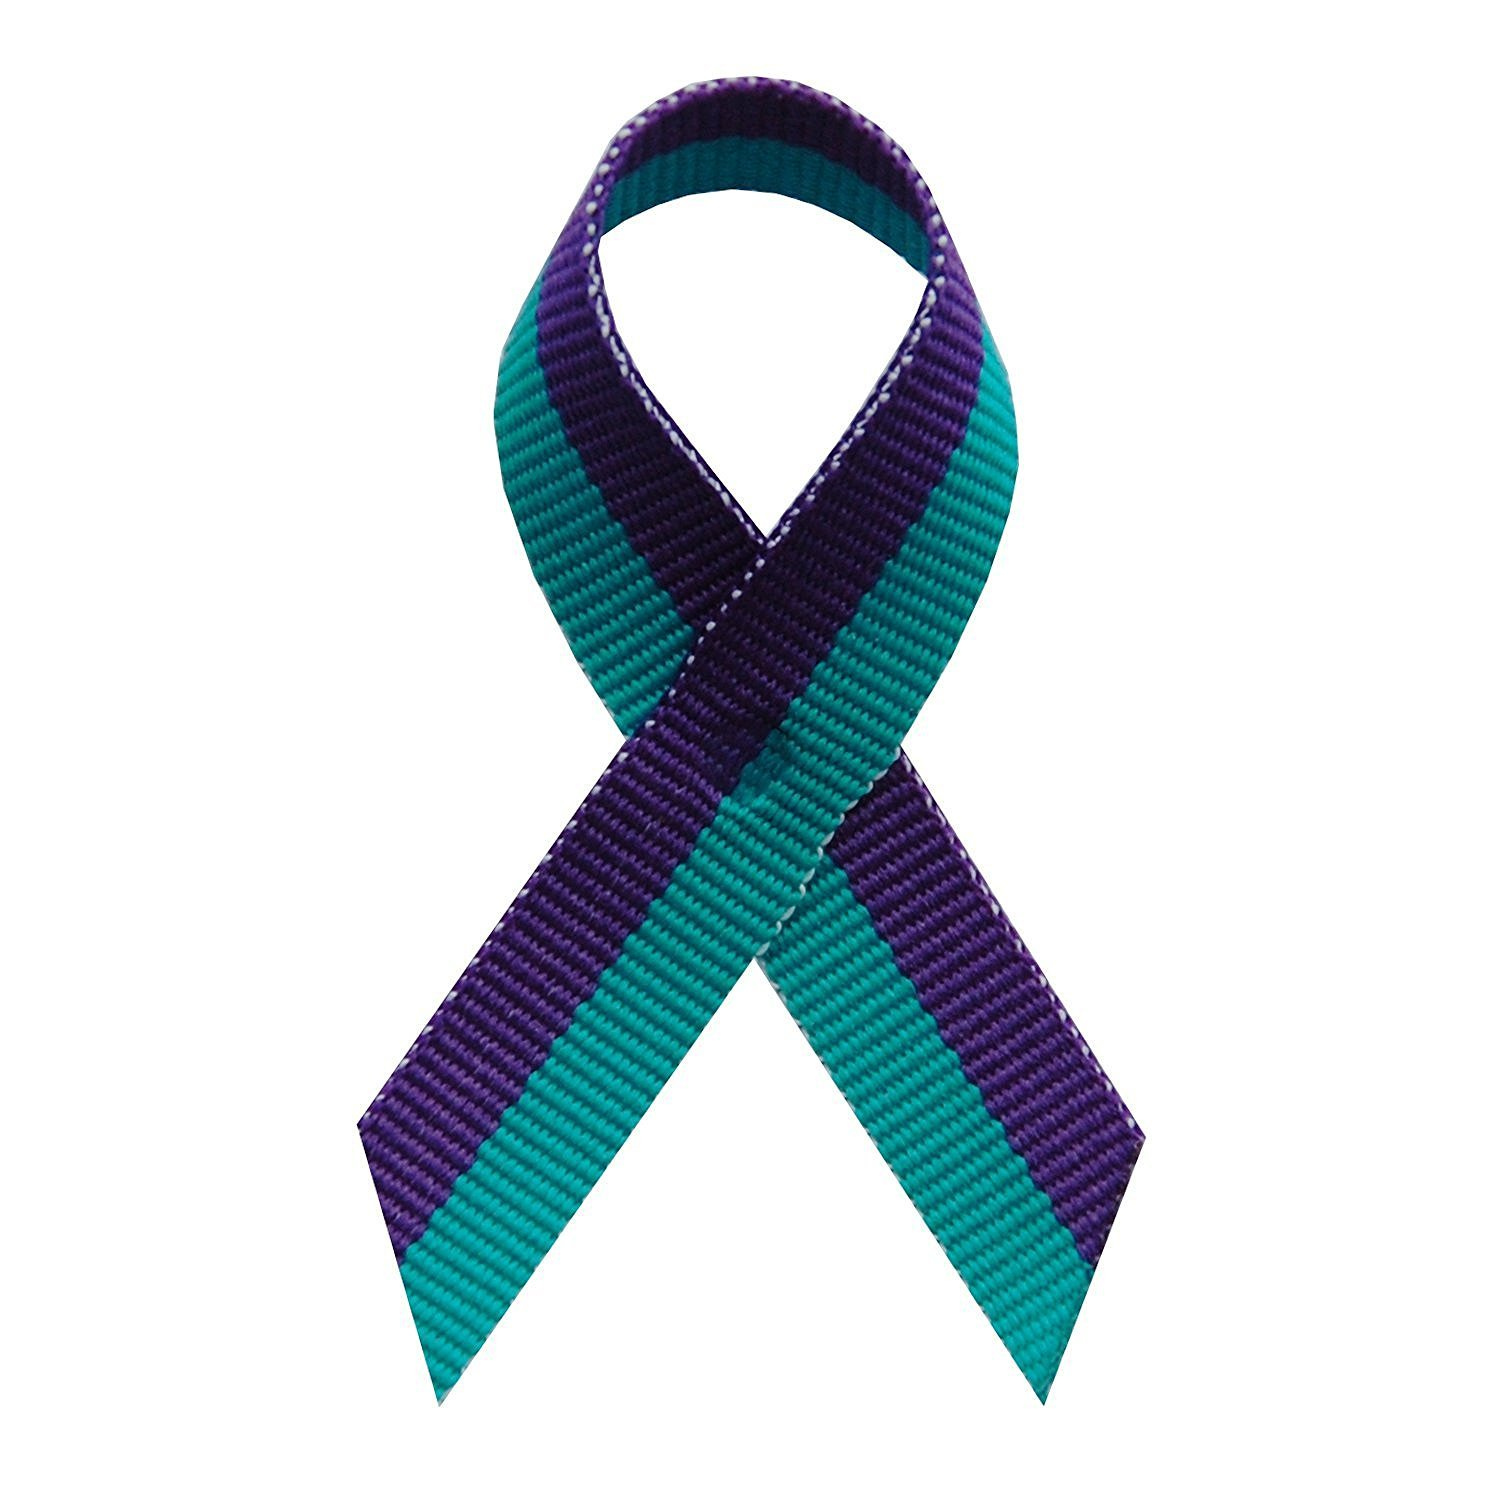 250 USA Made Suicide Prevention Awareness Ribbons - Bag of 250 Lapel Ribbons with Safety Pins (Many Colors Available)